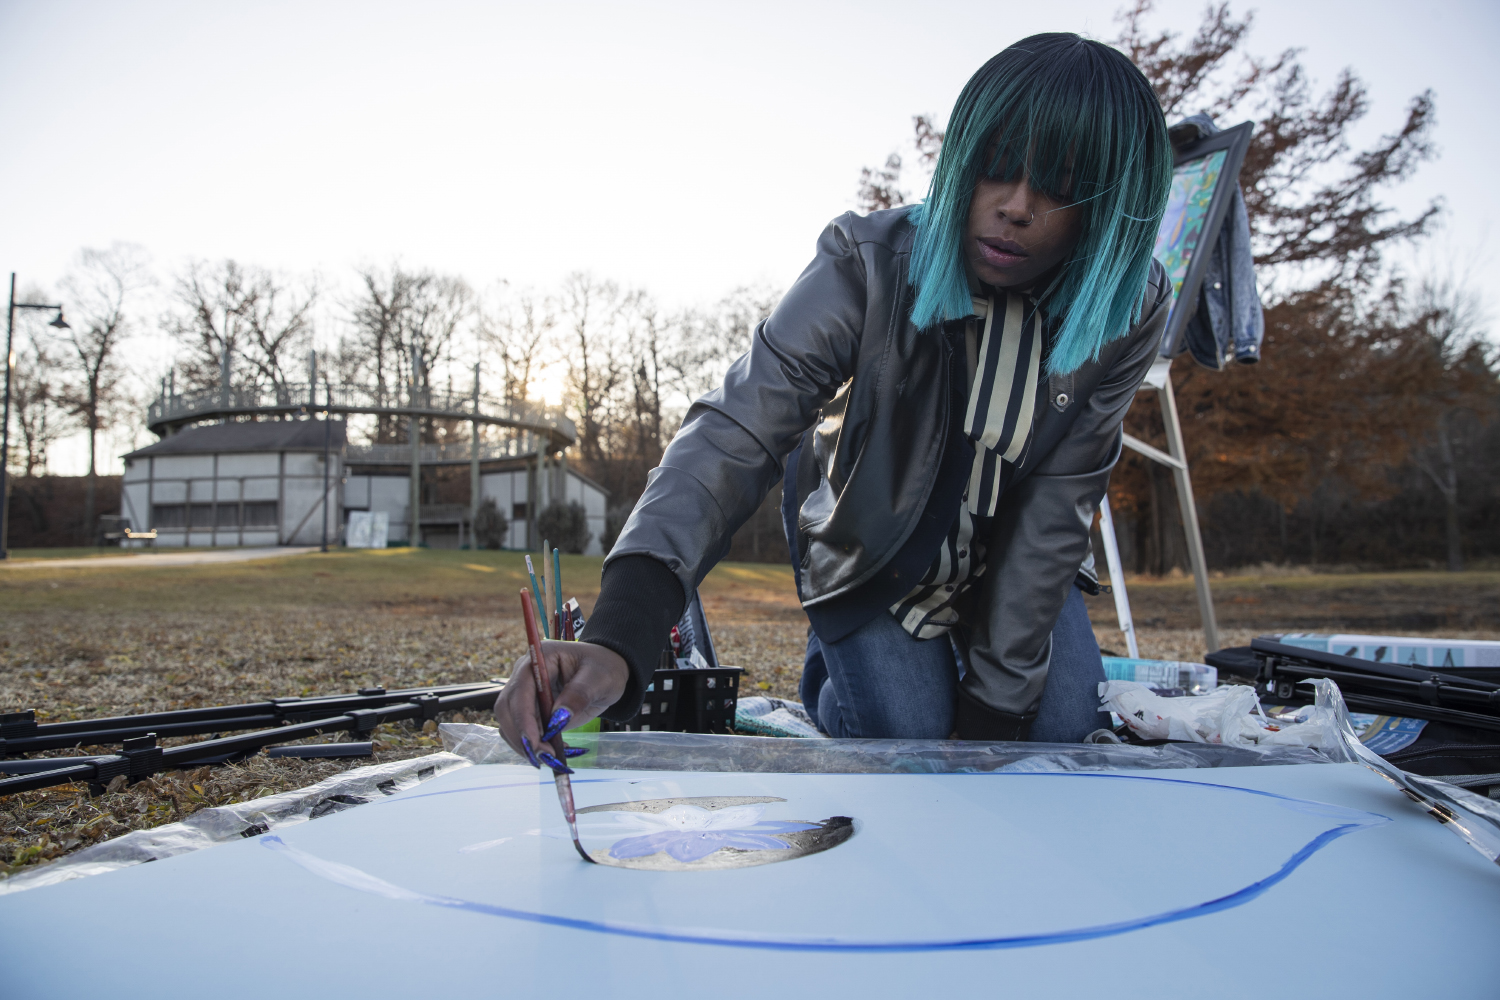 Senior Reanna Lewis paints in City Park on Tuesday, Dec. 3, 2019. Lewis is a painter, rapper, poet, and dancer. Lewis said that painting outside helps her to connect to her spirituality. (Katie Goodale/The Daily Iowan).